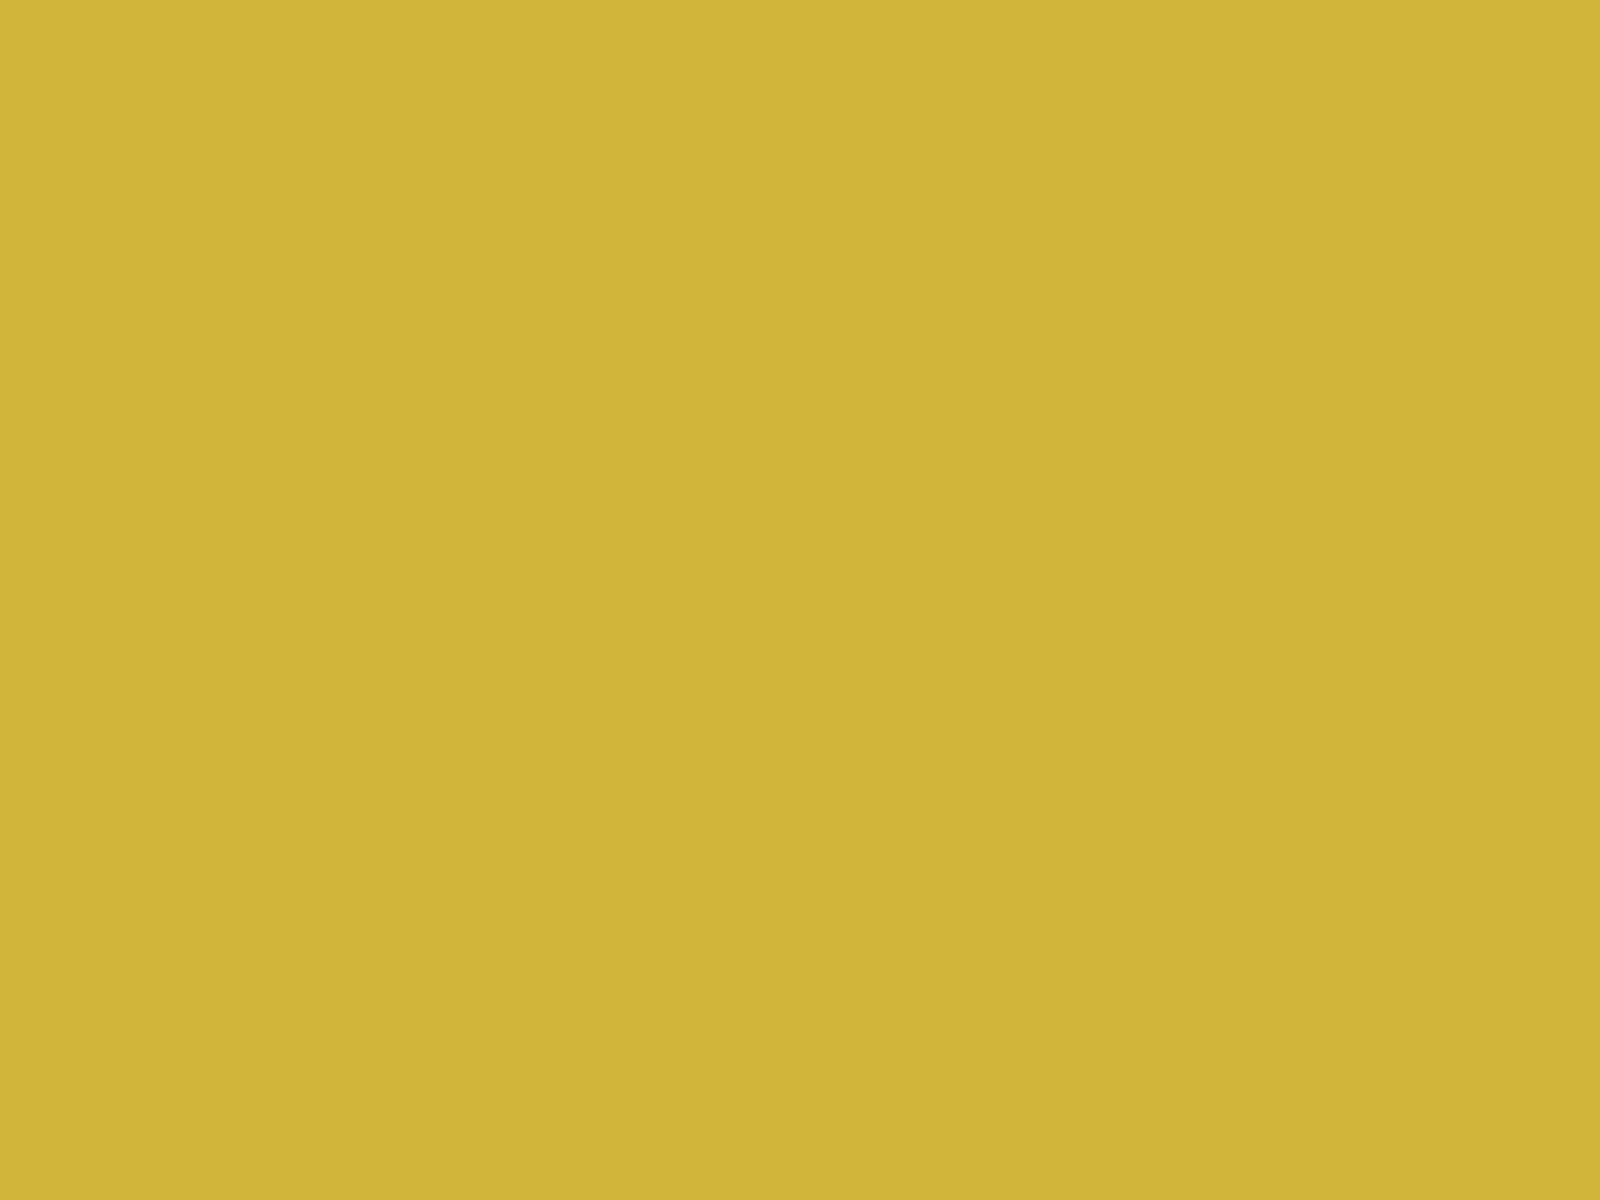 1600x1200 Old Gold Solid Color Background